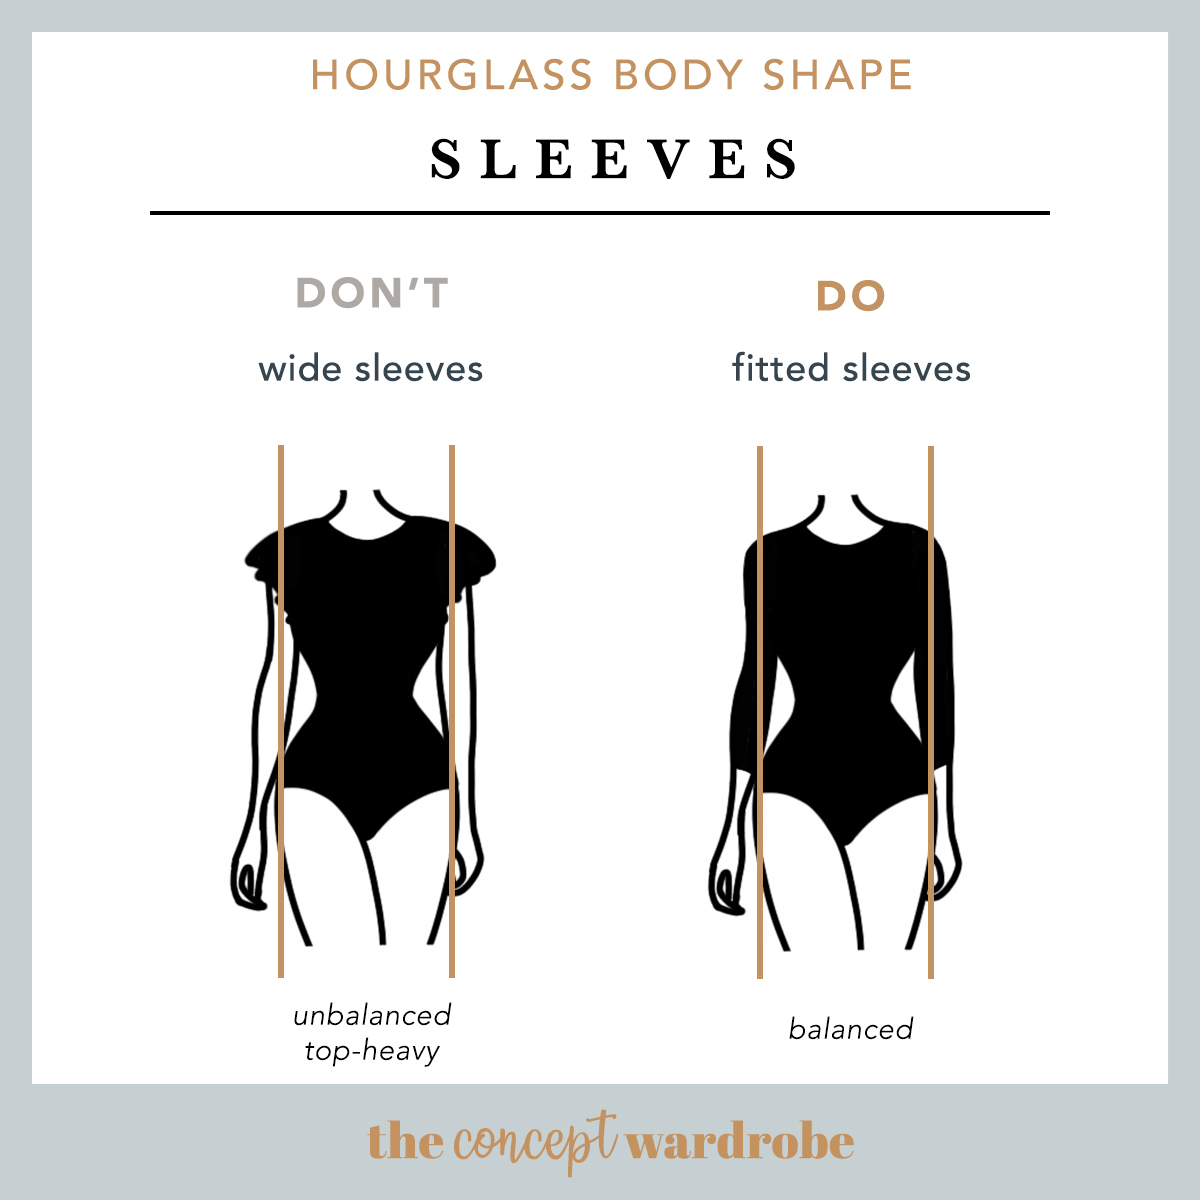 Hourglass Body Shape Sleeves Do's and Don'ts - the concept wardrobe